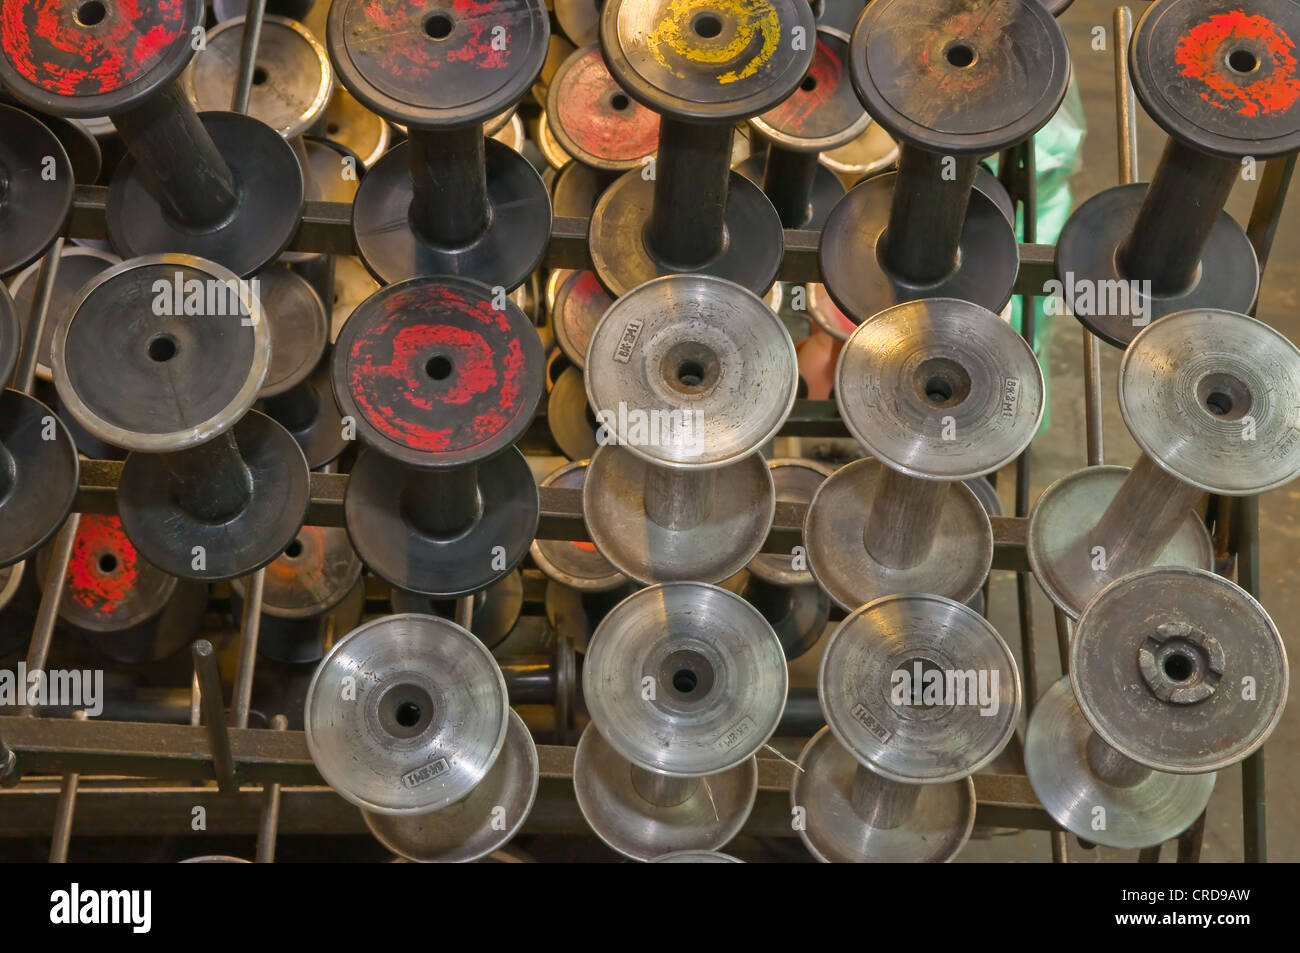 Textile factory equipment in the workshop - Stock Image